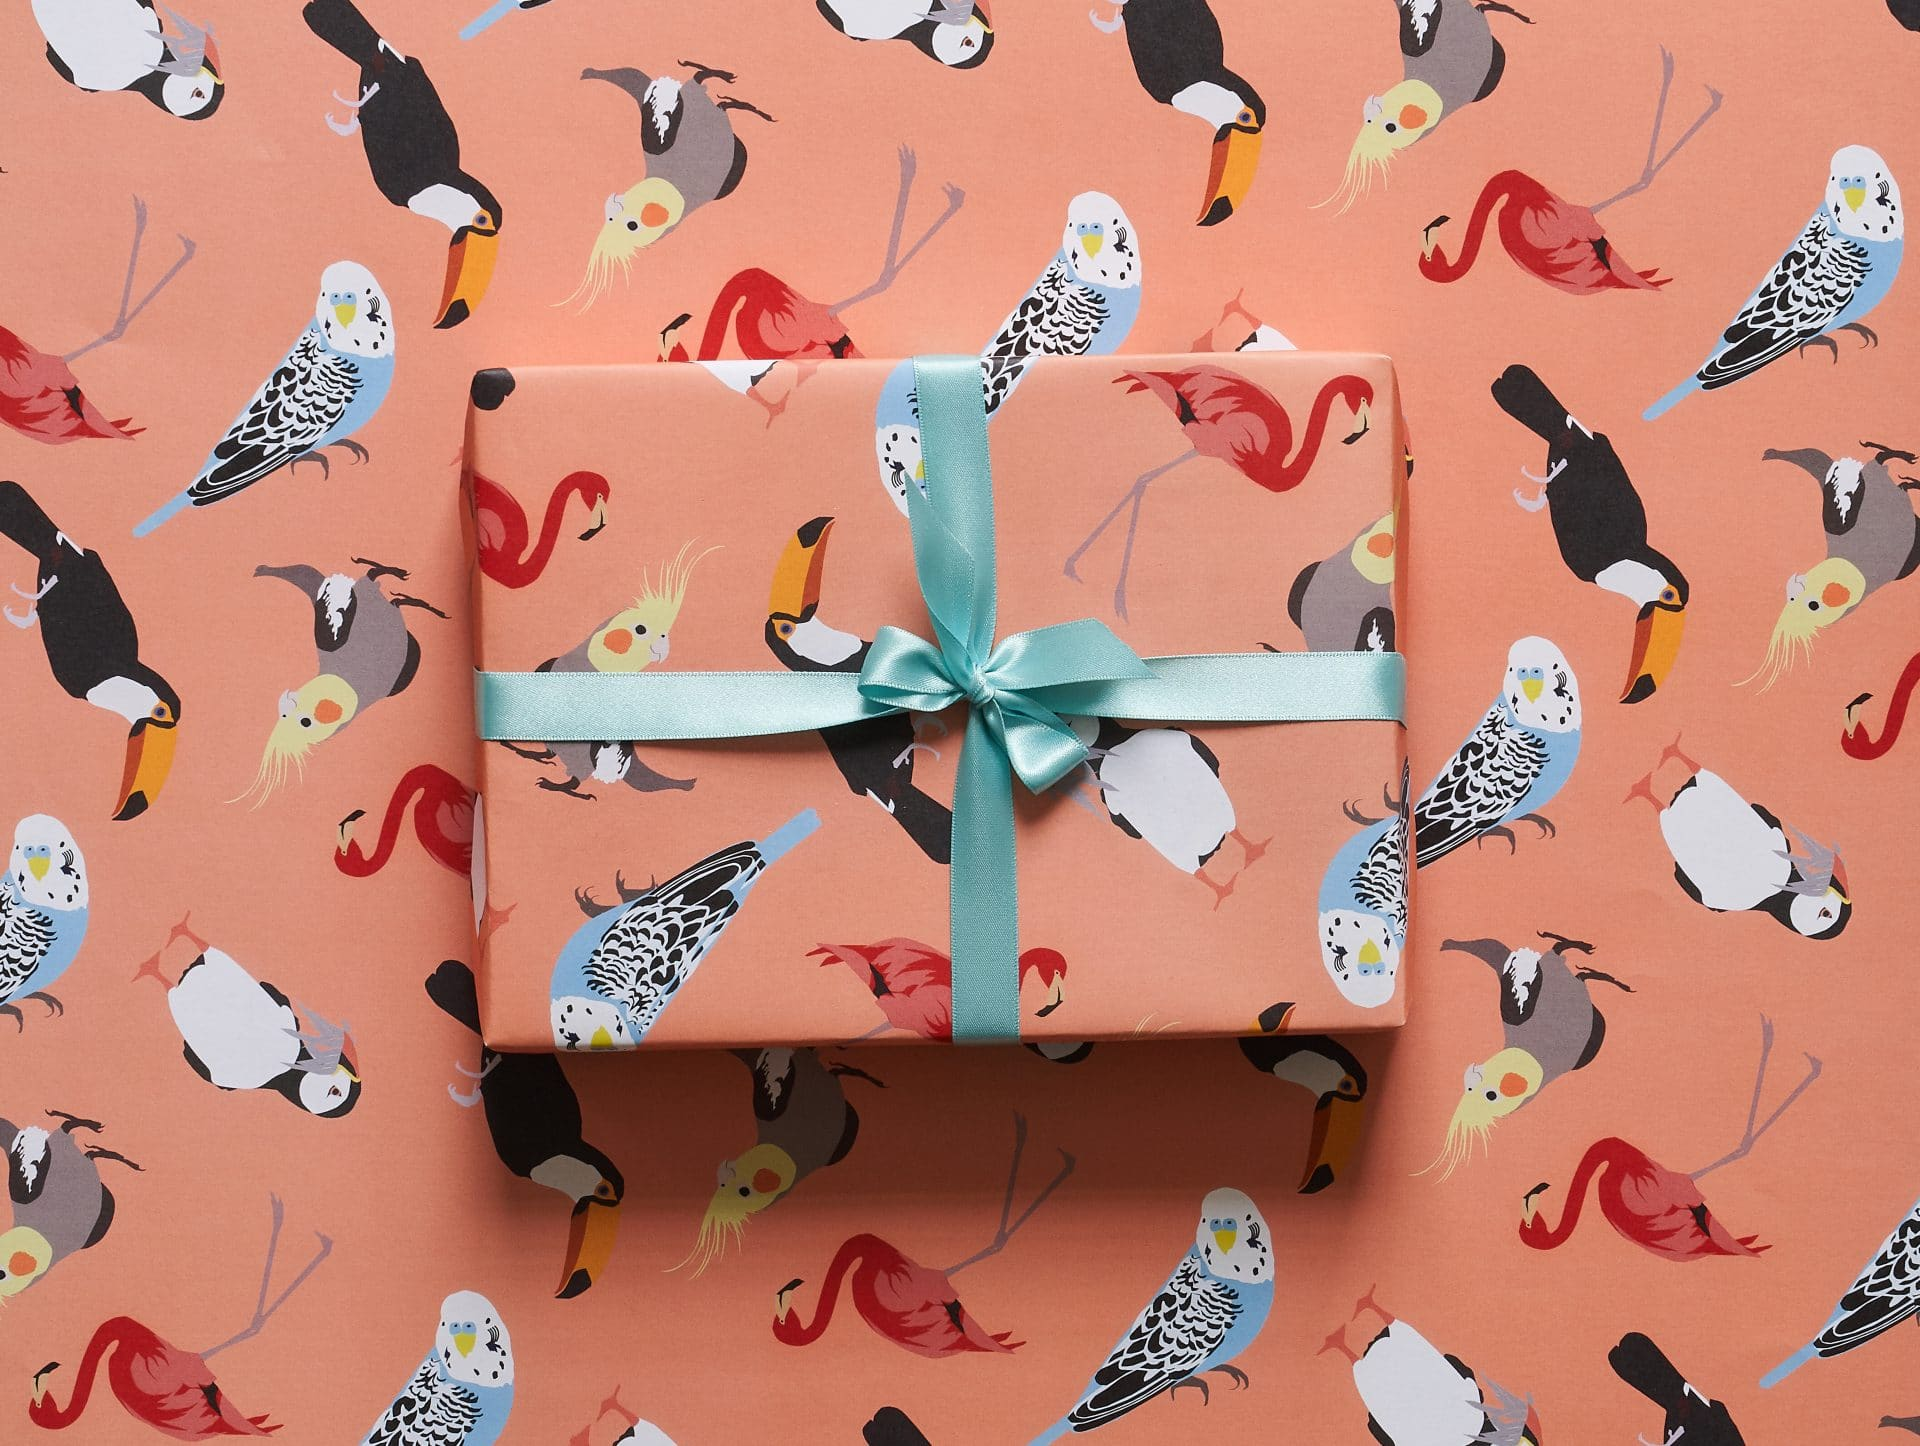 Bird watching gift wrap design by Lorna syson